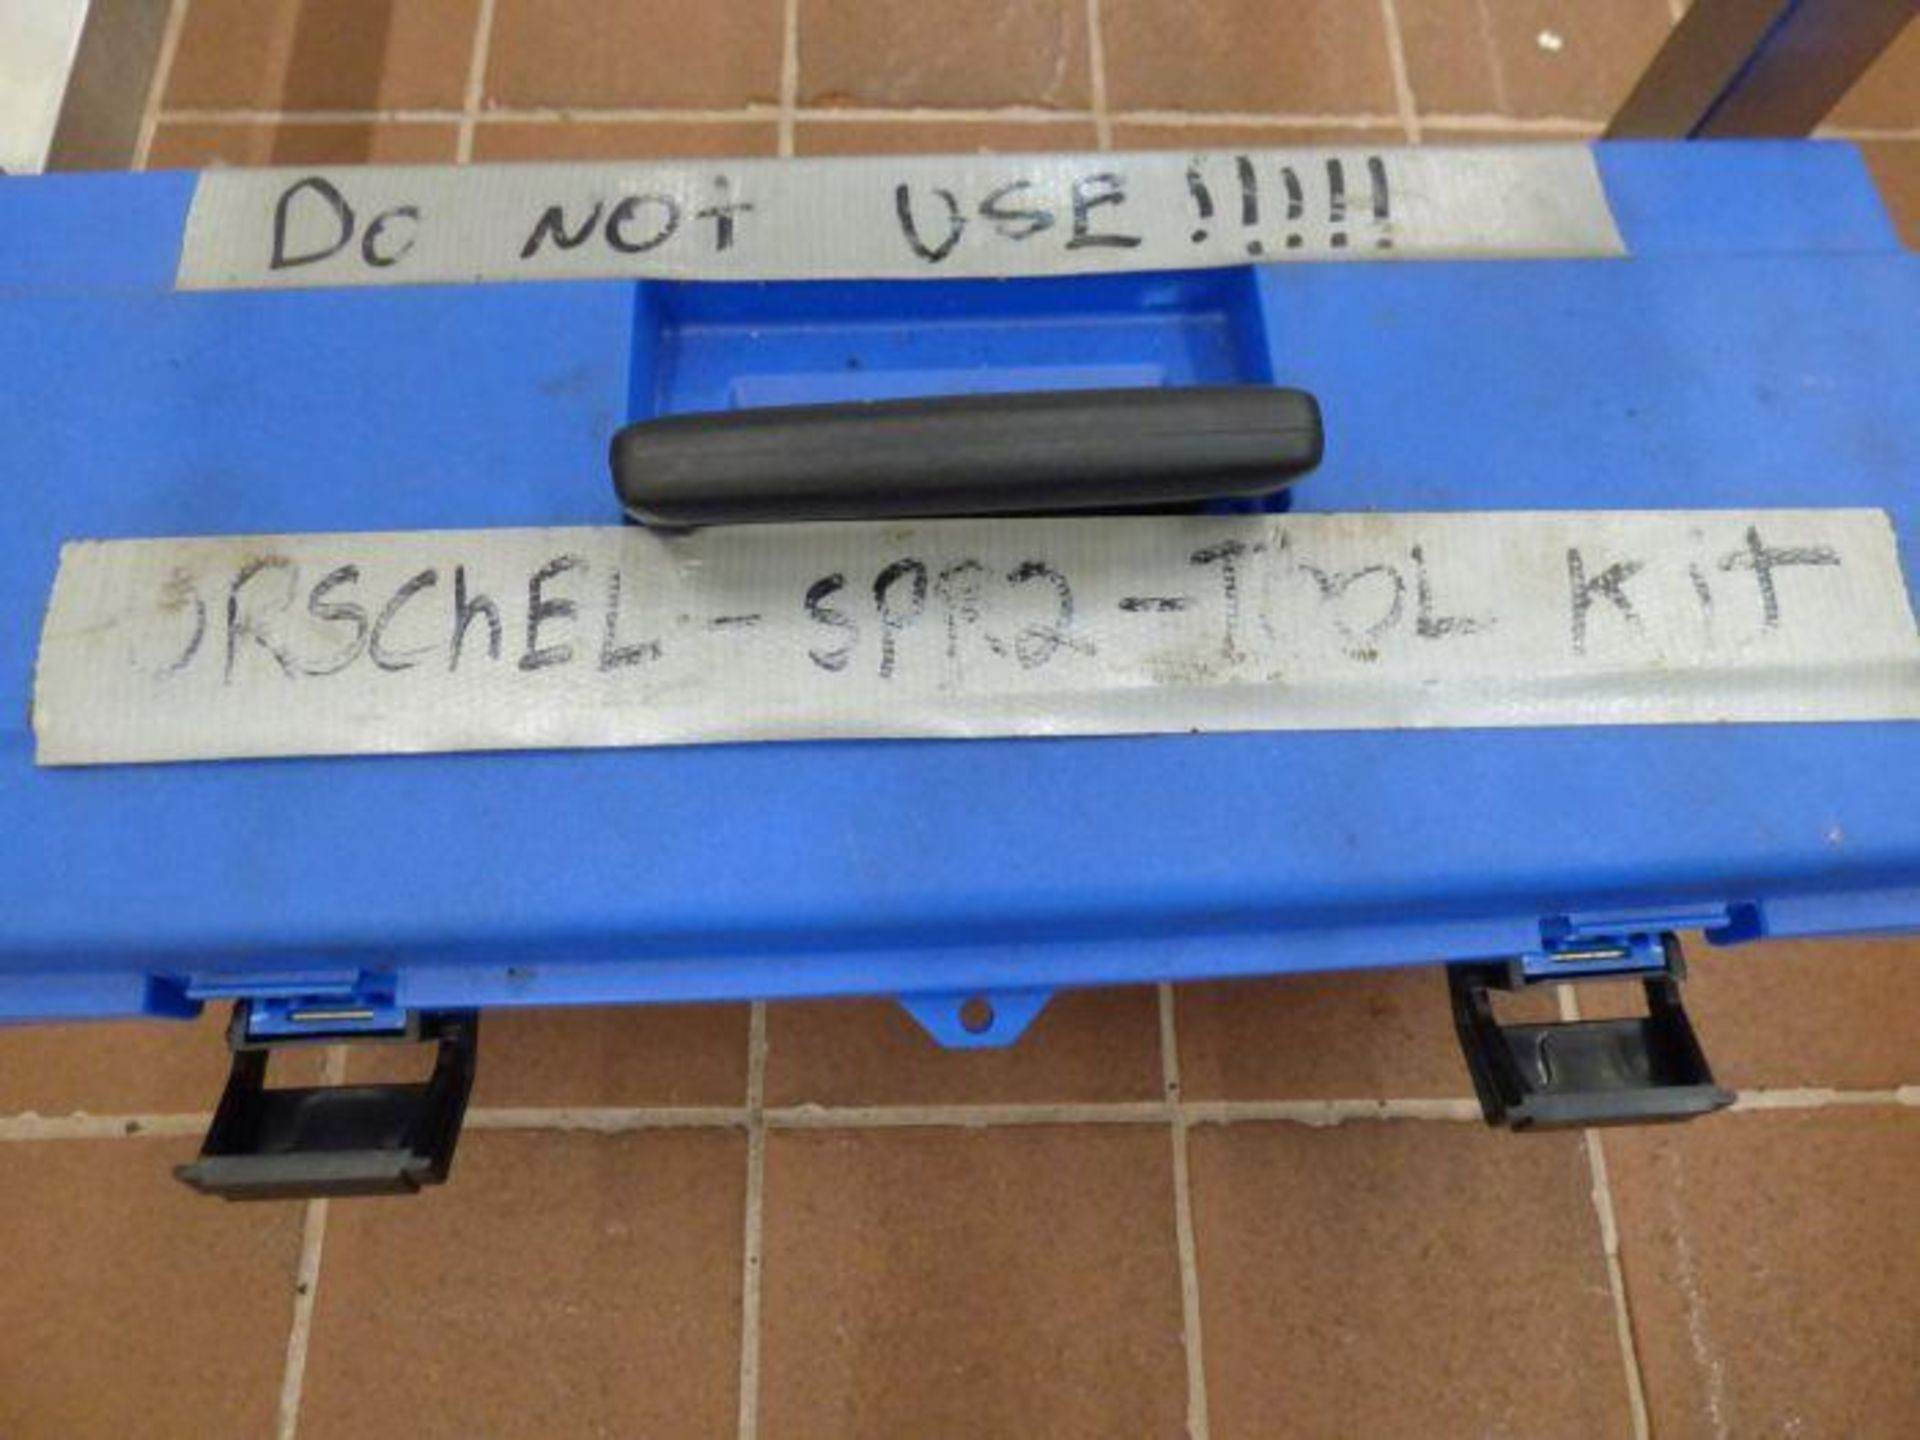 2015 Urshel Stainless Steel Dicer with Spare Parts - Image 16 of 25